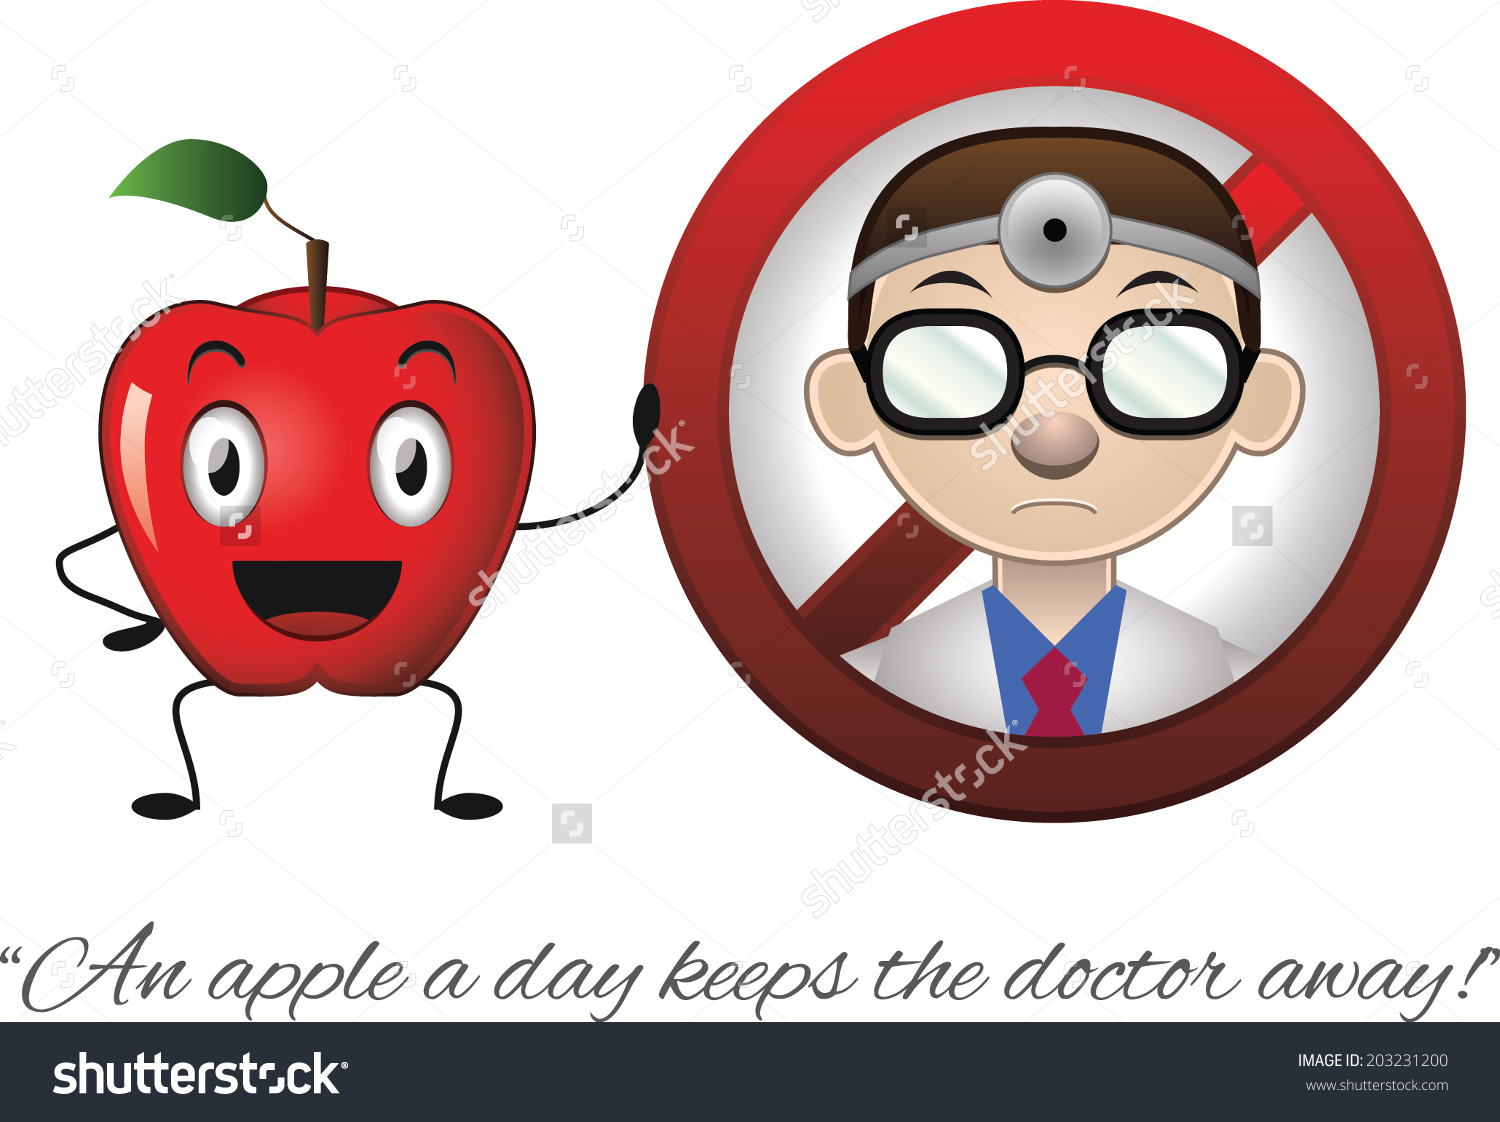 Funny Illustration Phrase Apple Day Keeps Stock Vector 203231200.